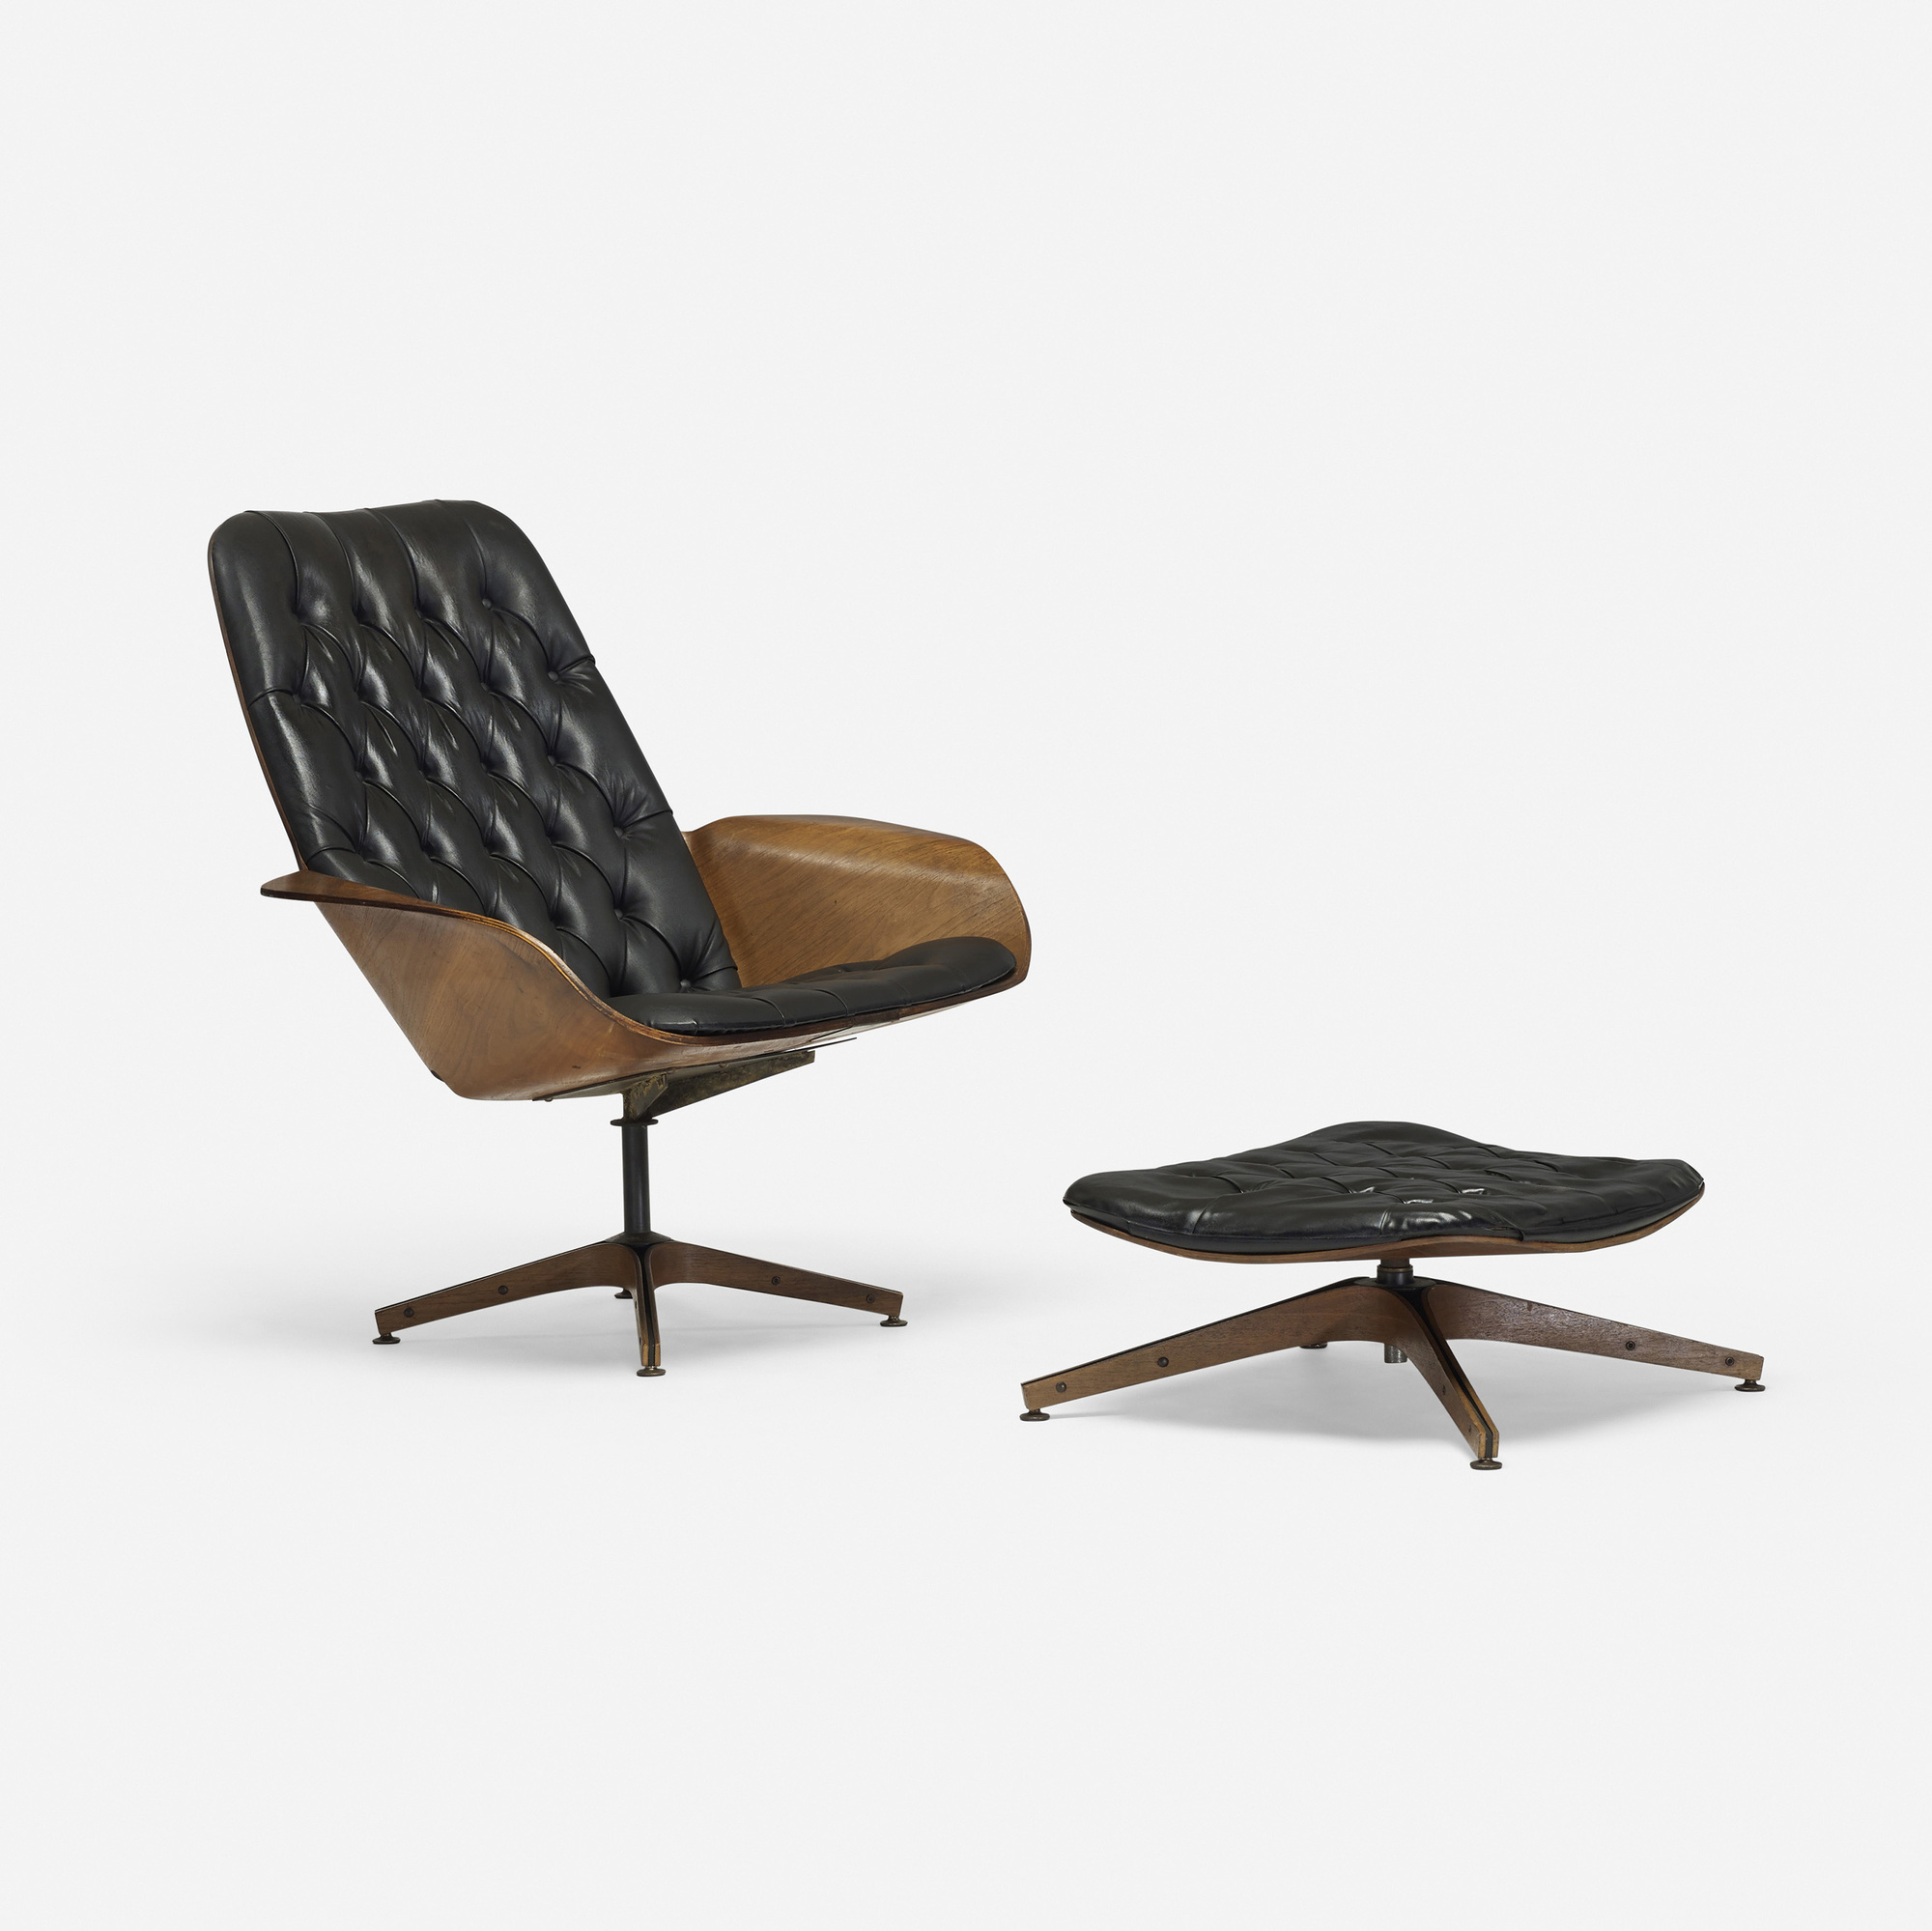 187: George Mulhauser / Mr. Chair Lounge Chair And Ottoman (1 Of 3